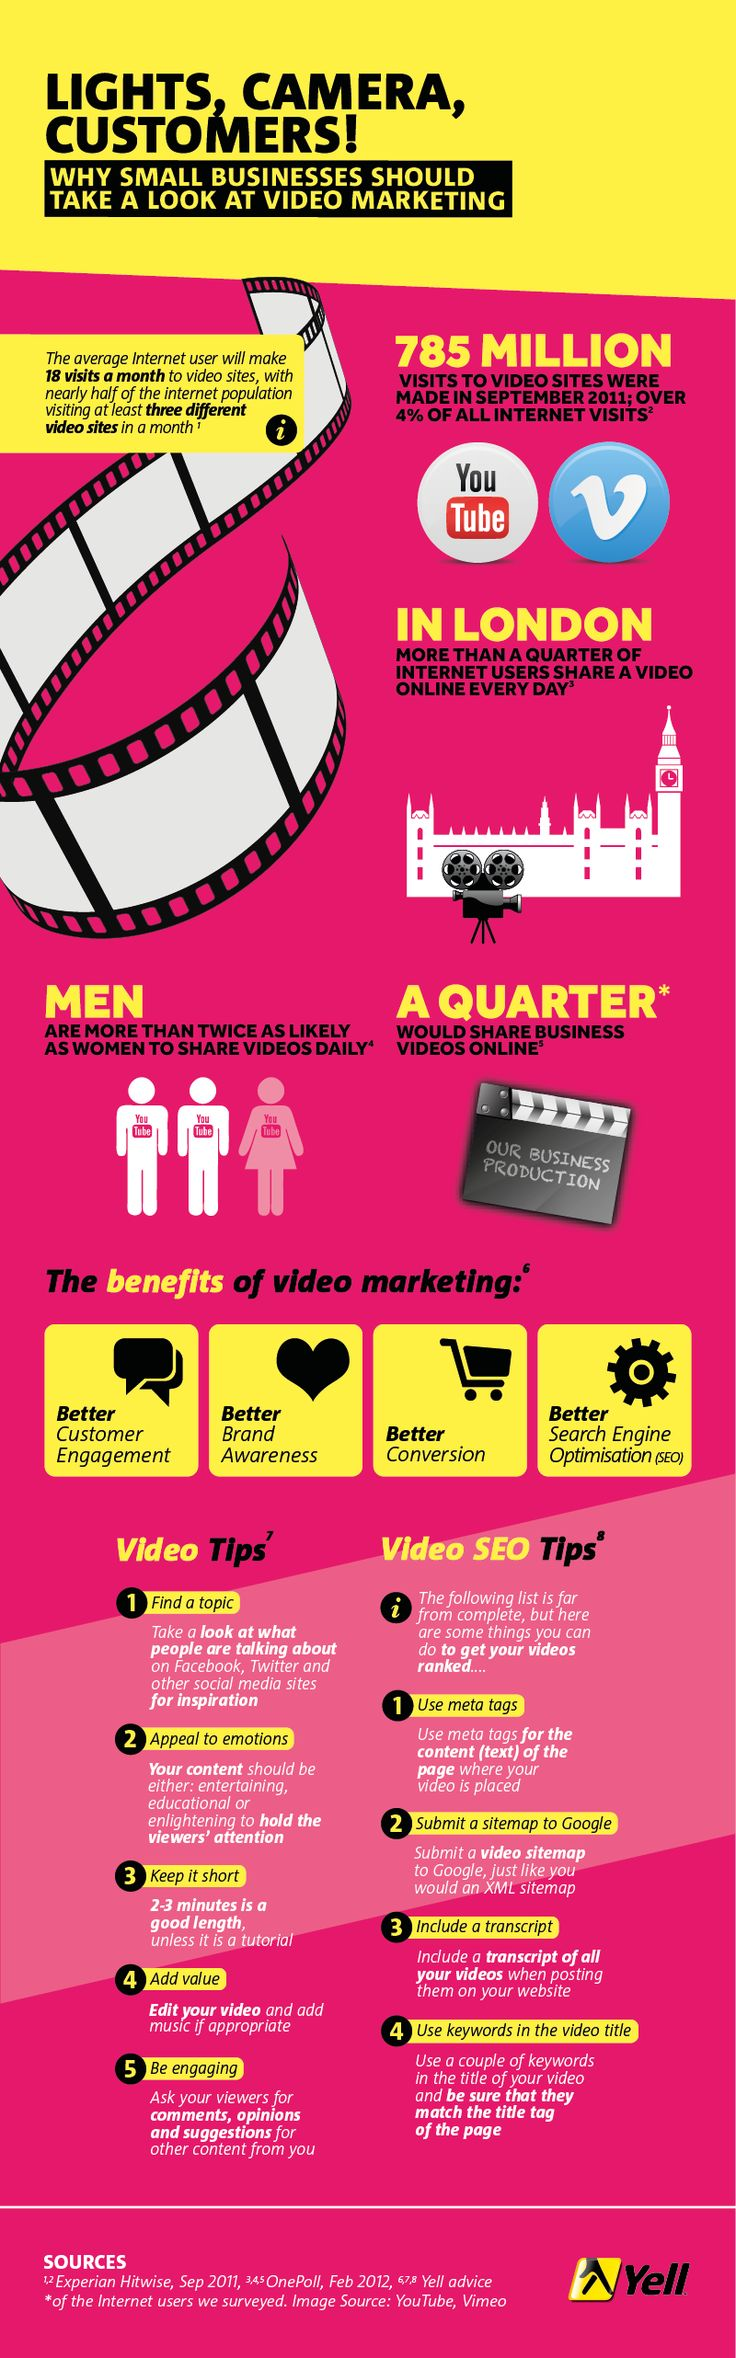 video_marketing pymes Video Marketing and SEO are a great way to drive traffic to your website and grow your business!